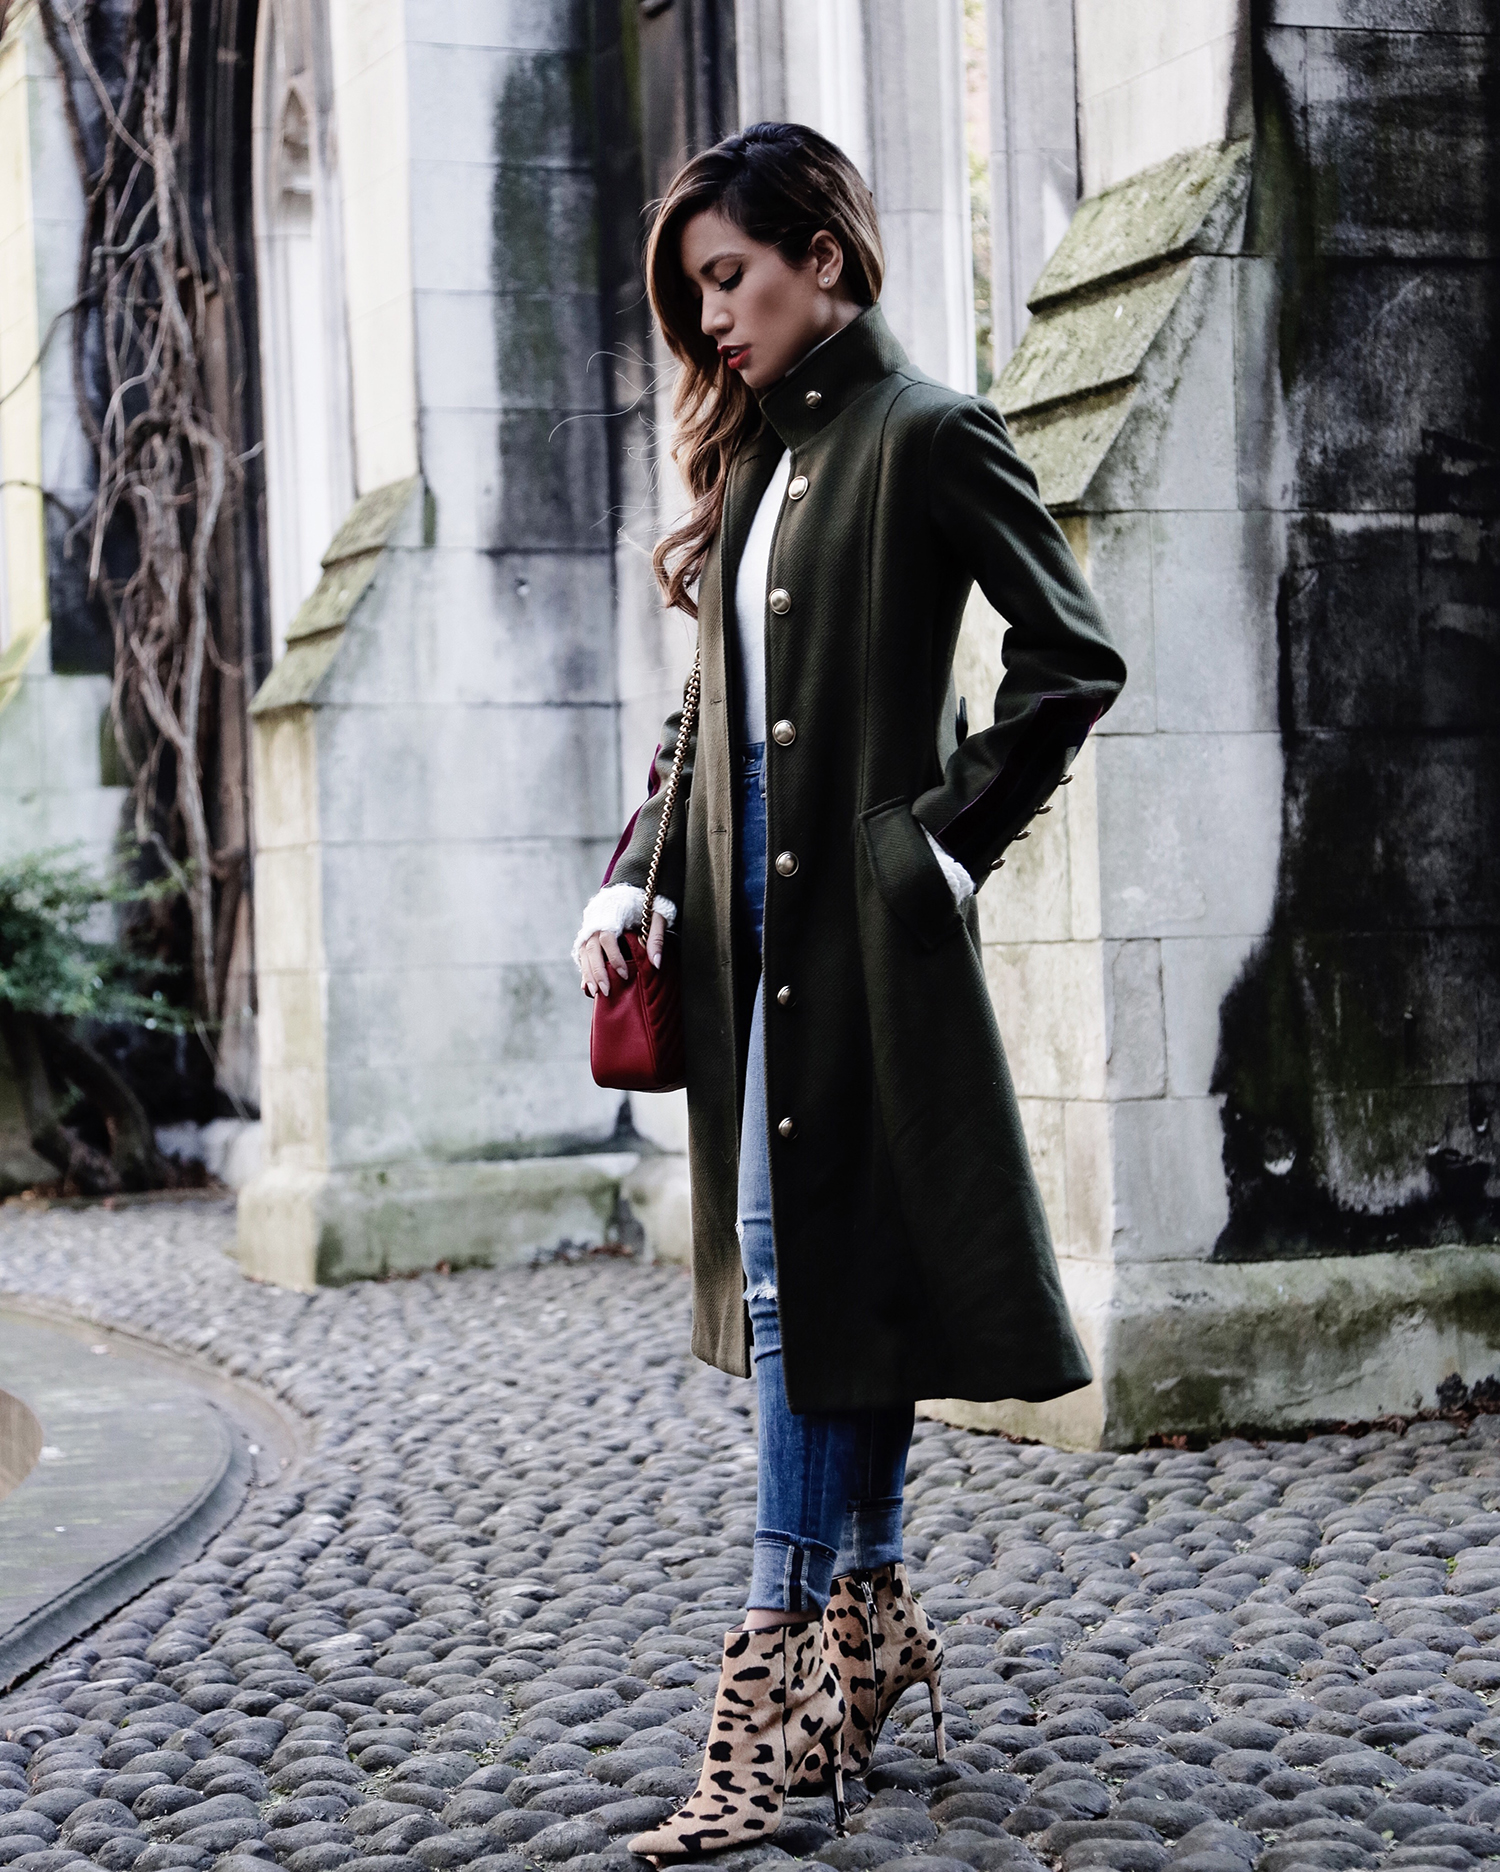 Jessi Malay wearing Storets Military Coat